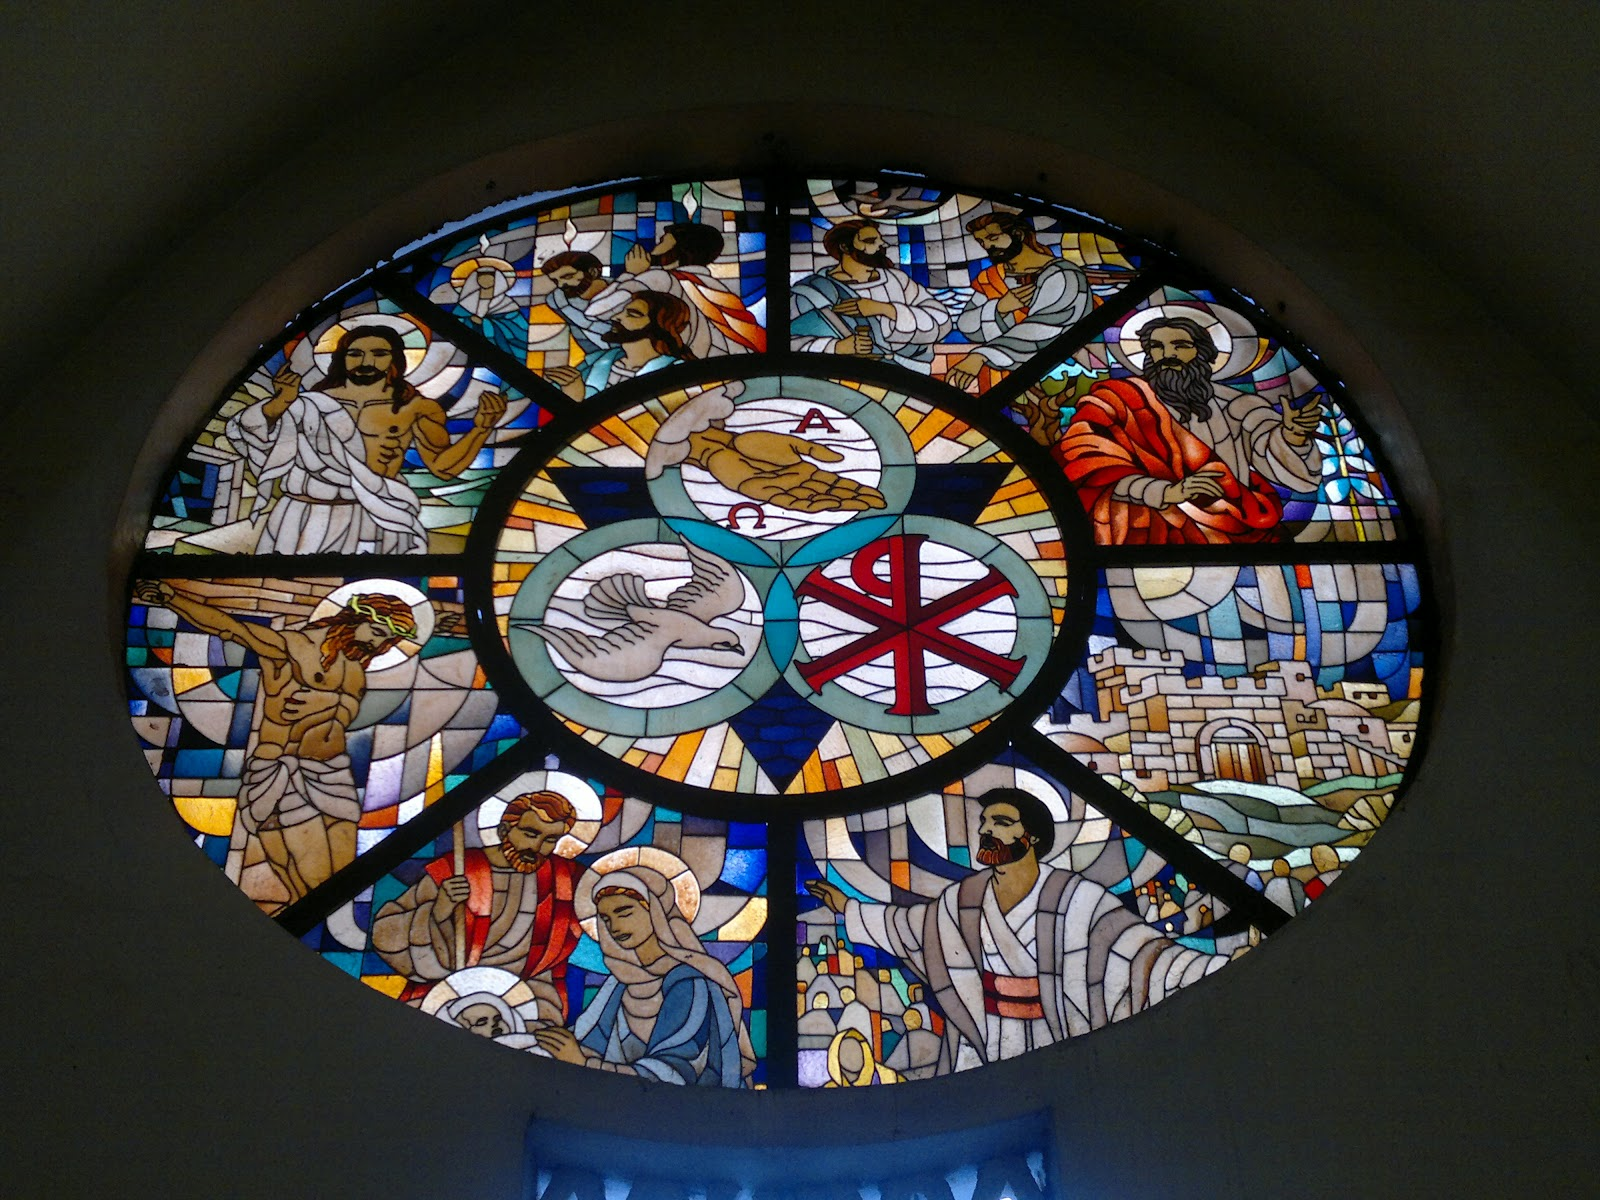 diocese of borongan history Rosemary duffy larson gallery 1,297 likes 9 talking about this 104 were here diocese of borongan religious organization fiu art + art history department.